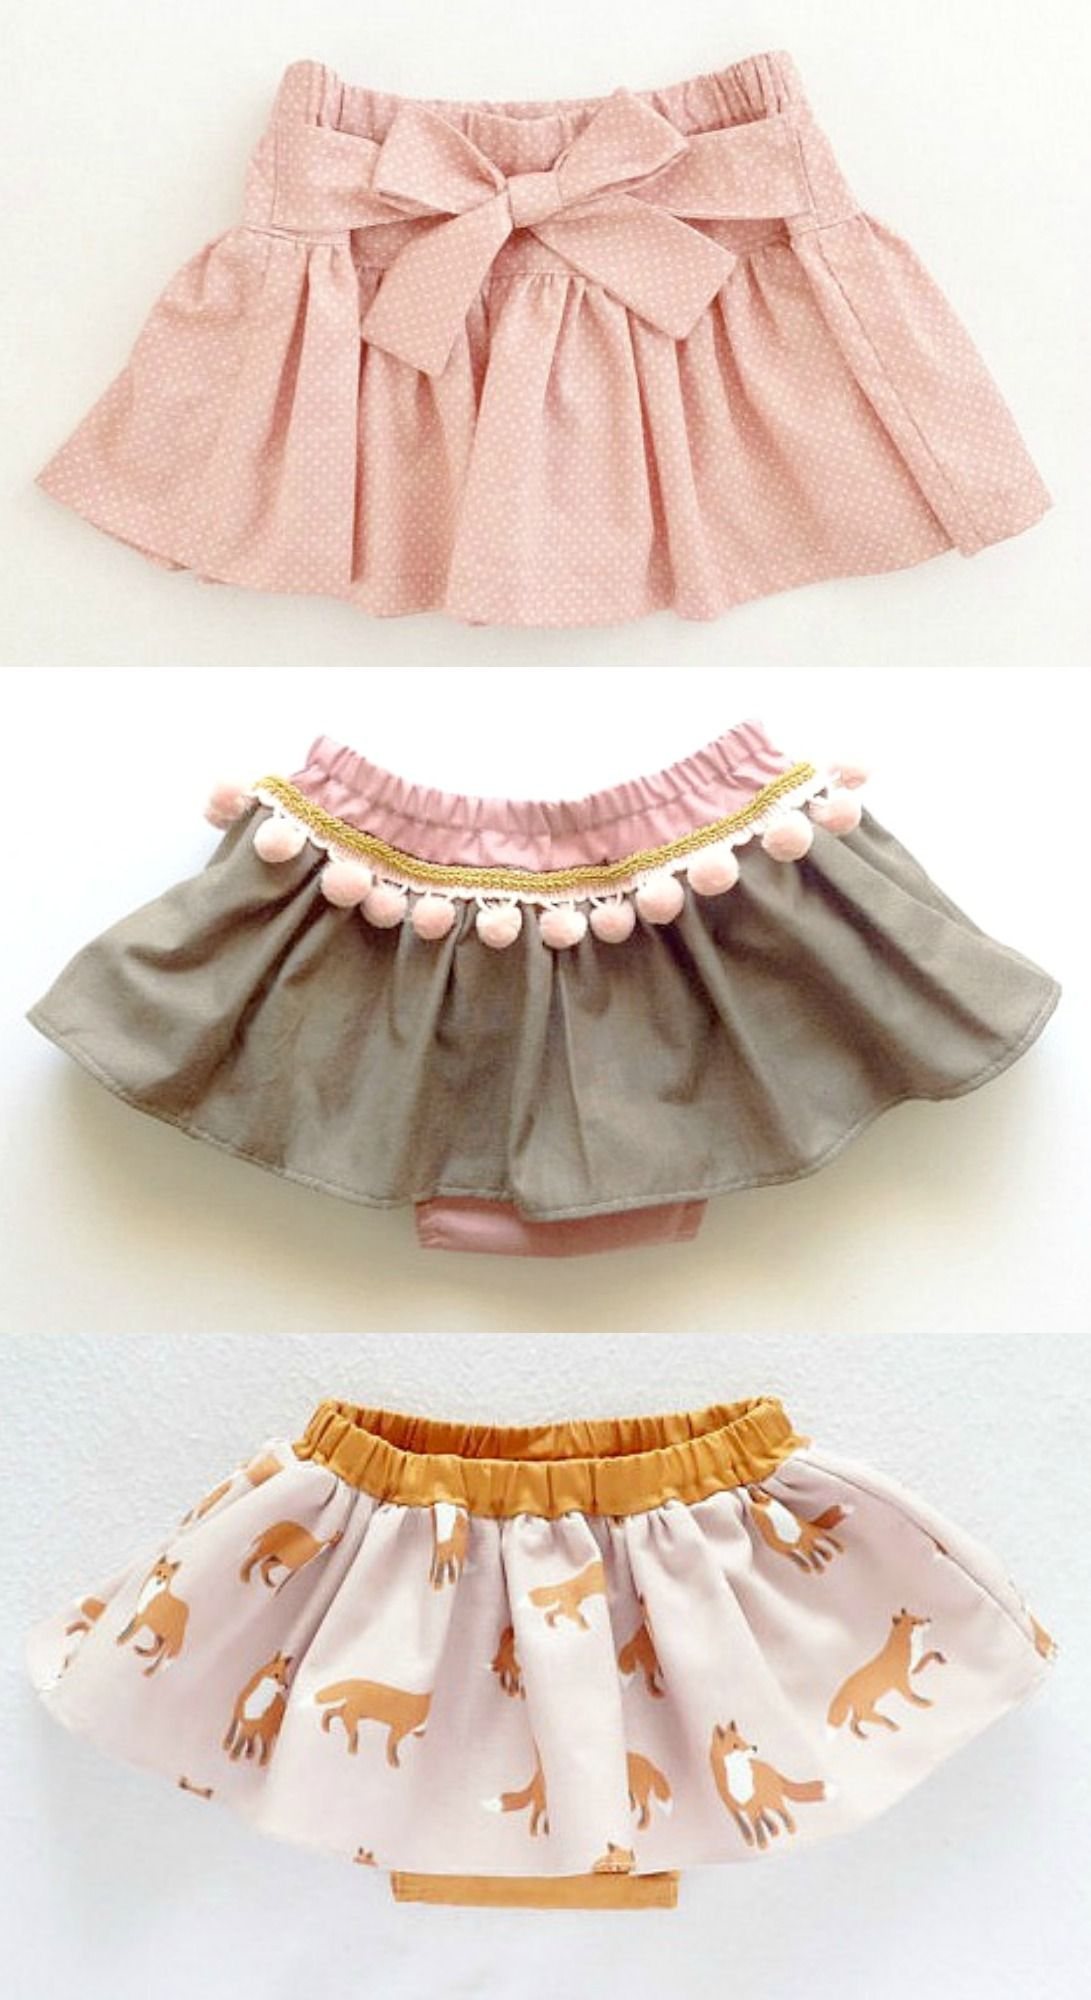 1daecd39f76c Handmade Skirts With Bloomers